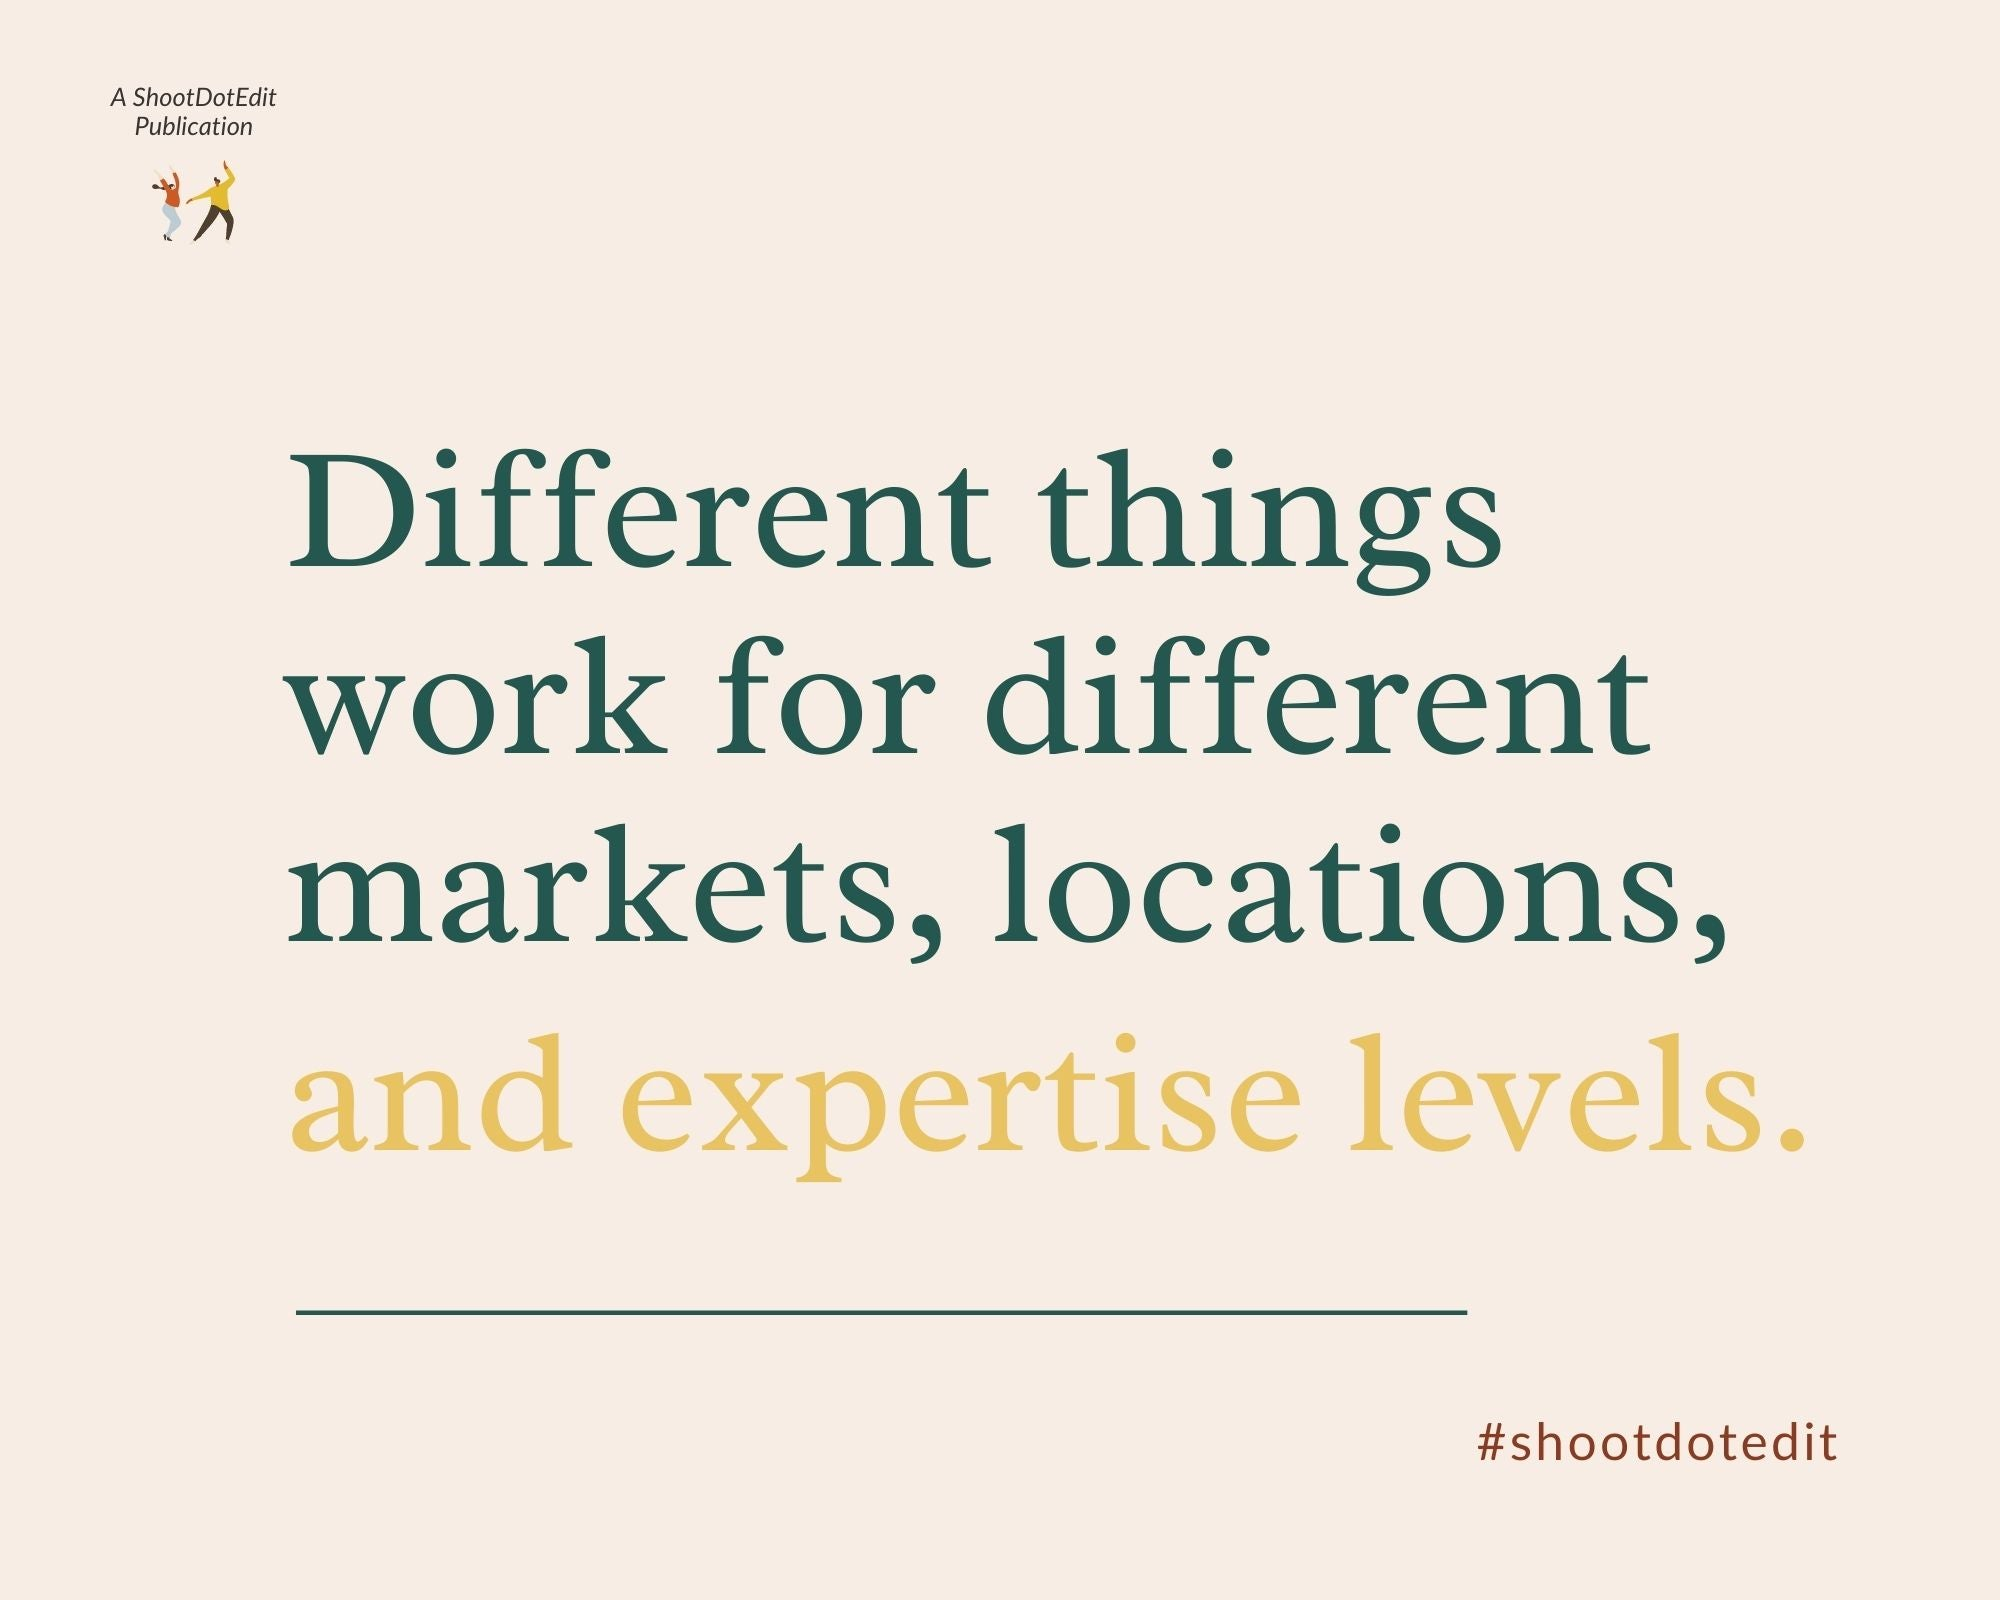 Infographic stating different things work for different markets, locations, and expertise levels